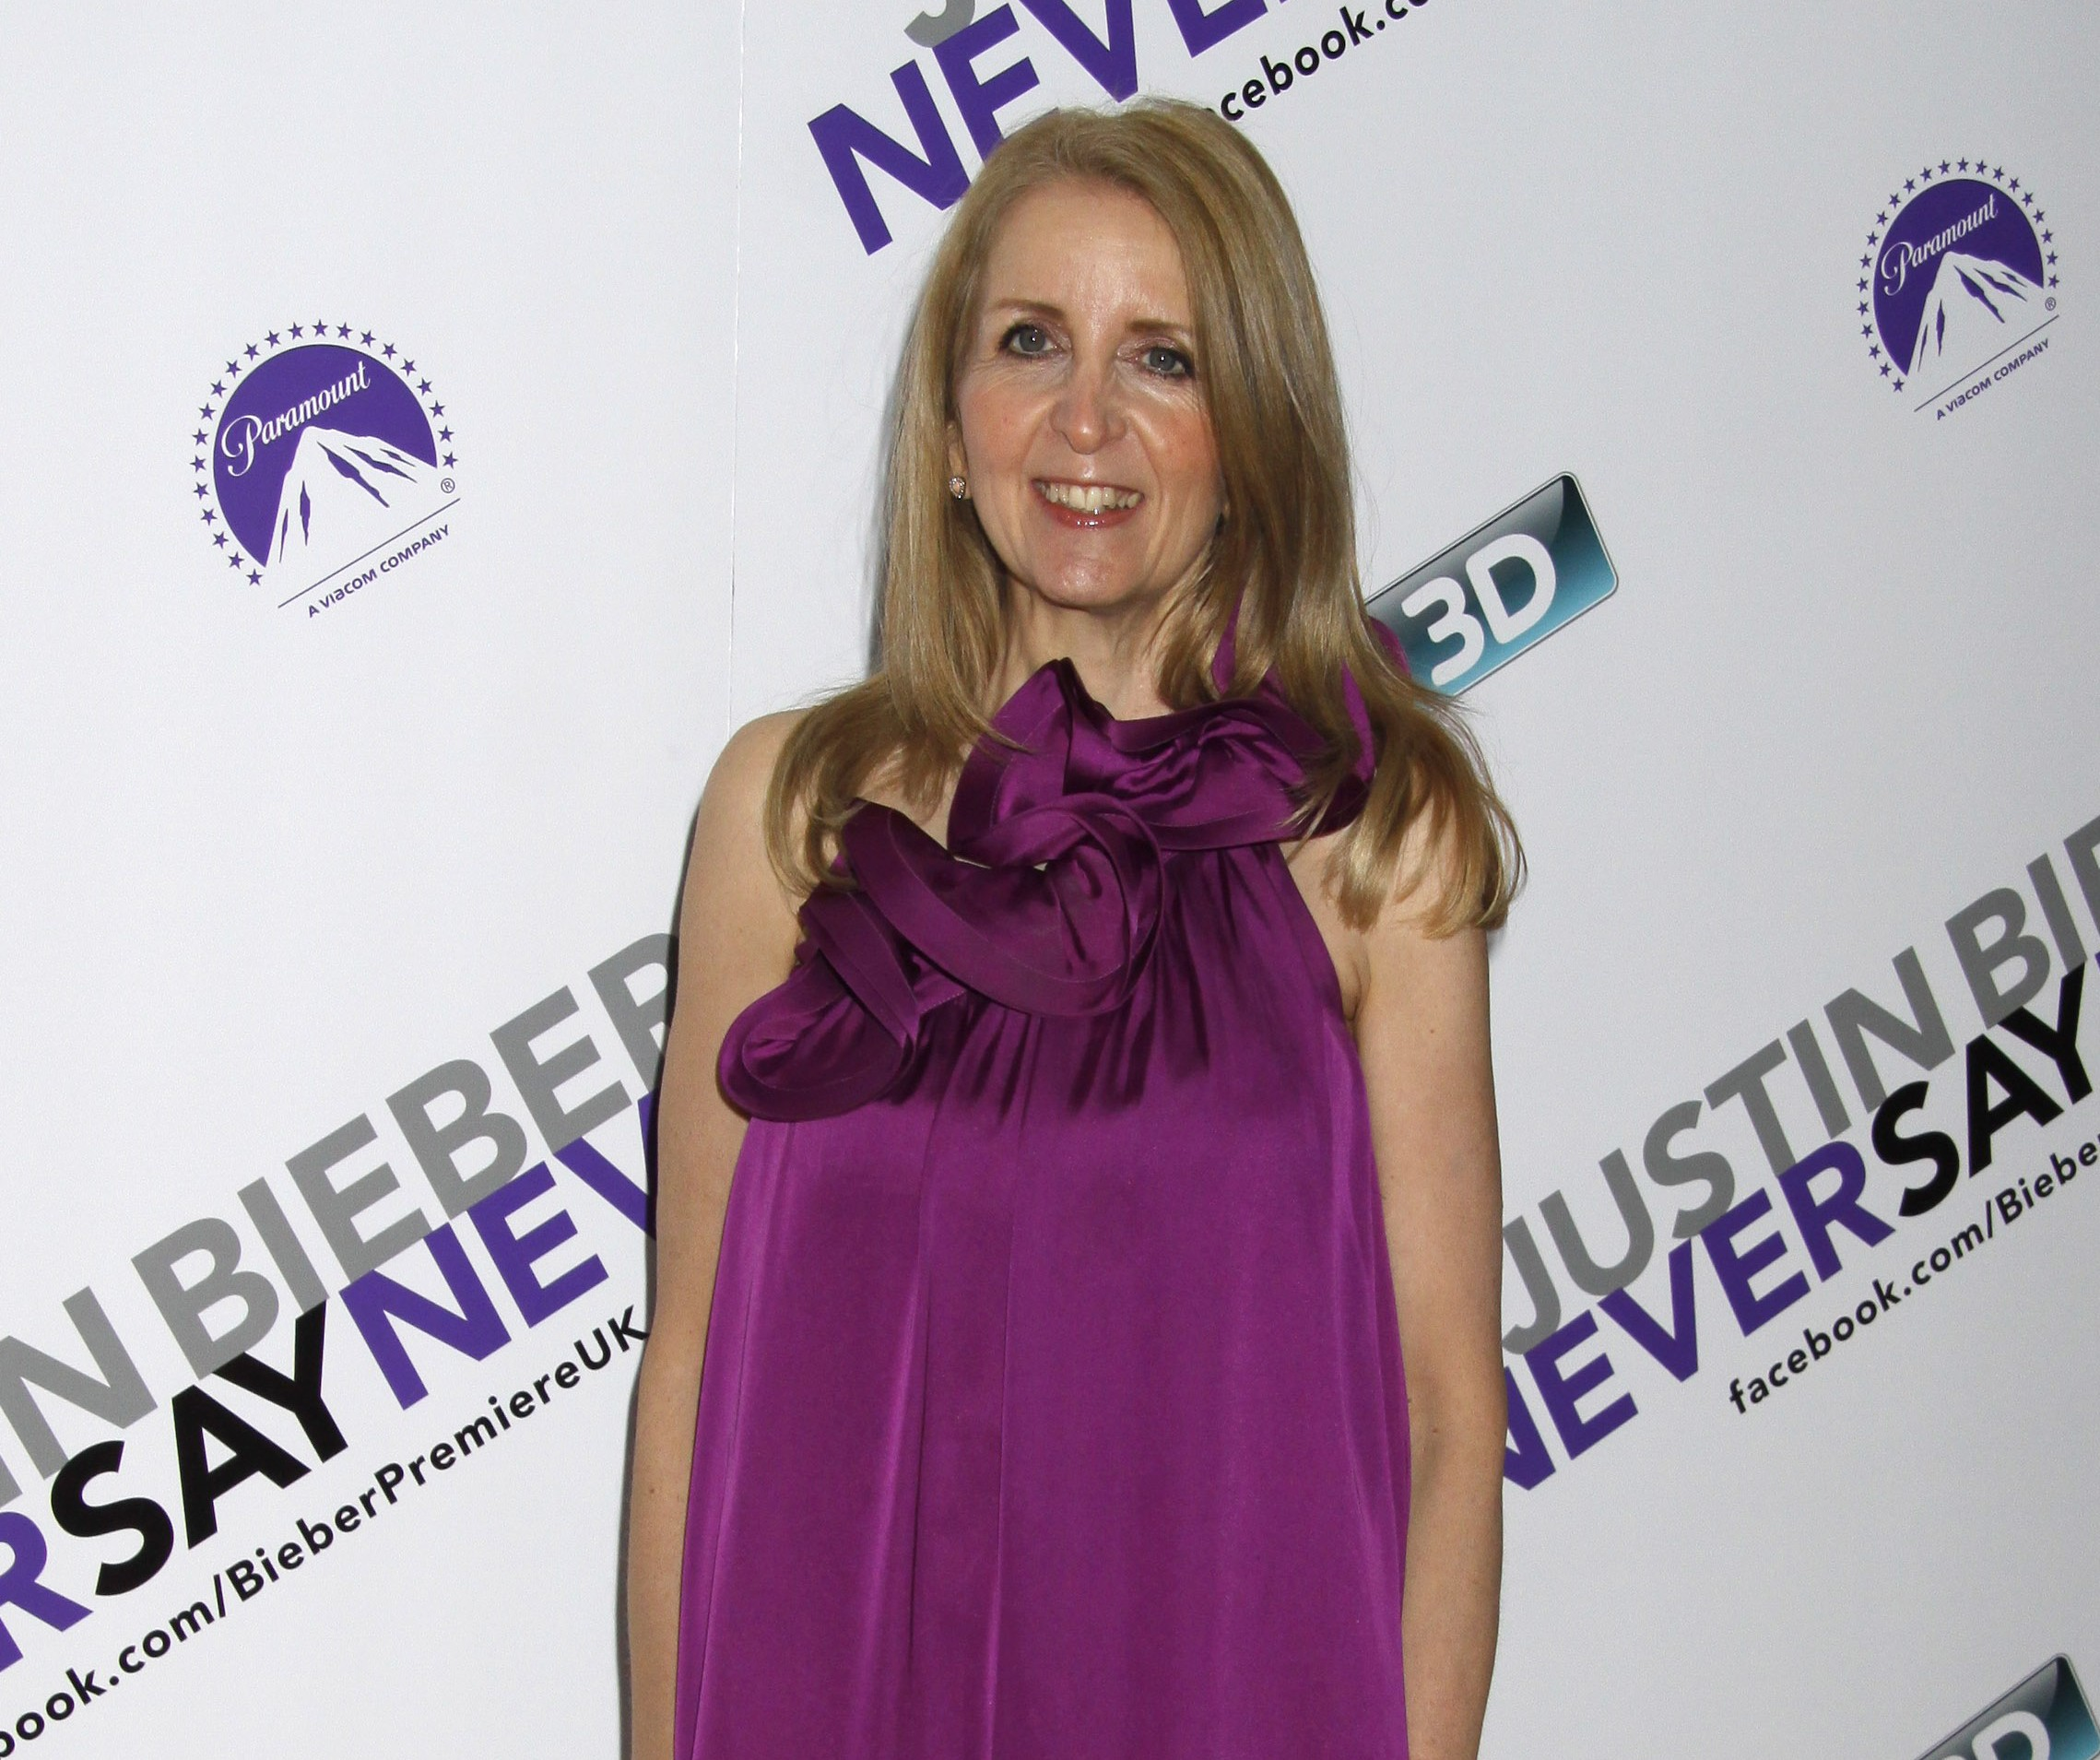 Celebrity Big Brother: Gillian McKeith to enter the house and will be 'inspecting the housemates' poos'